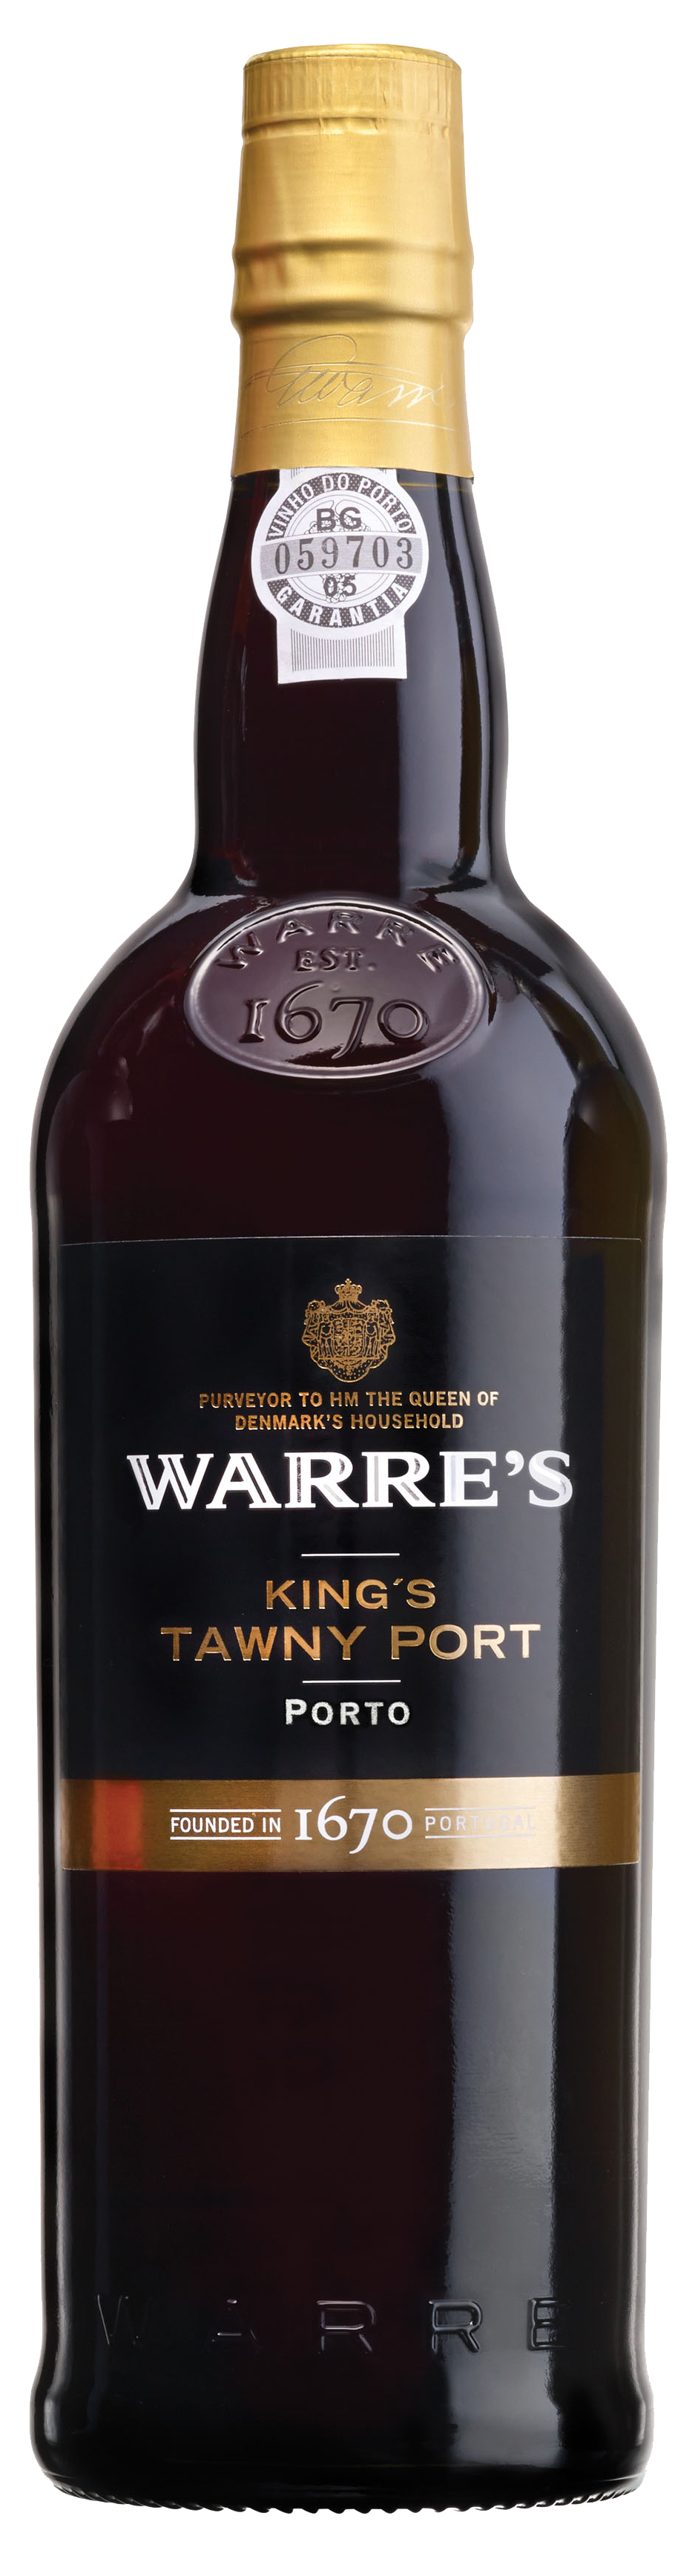 Warre's King's Tawny Port Bottle.jpg